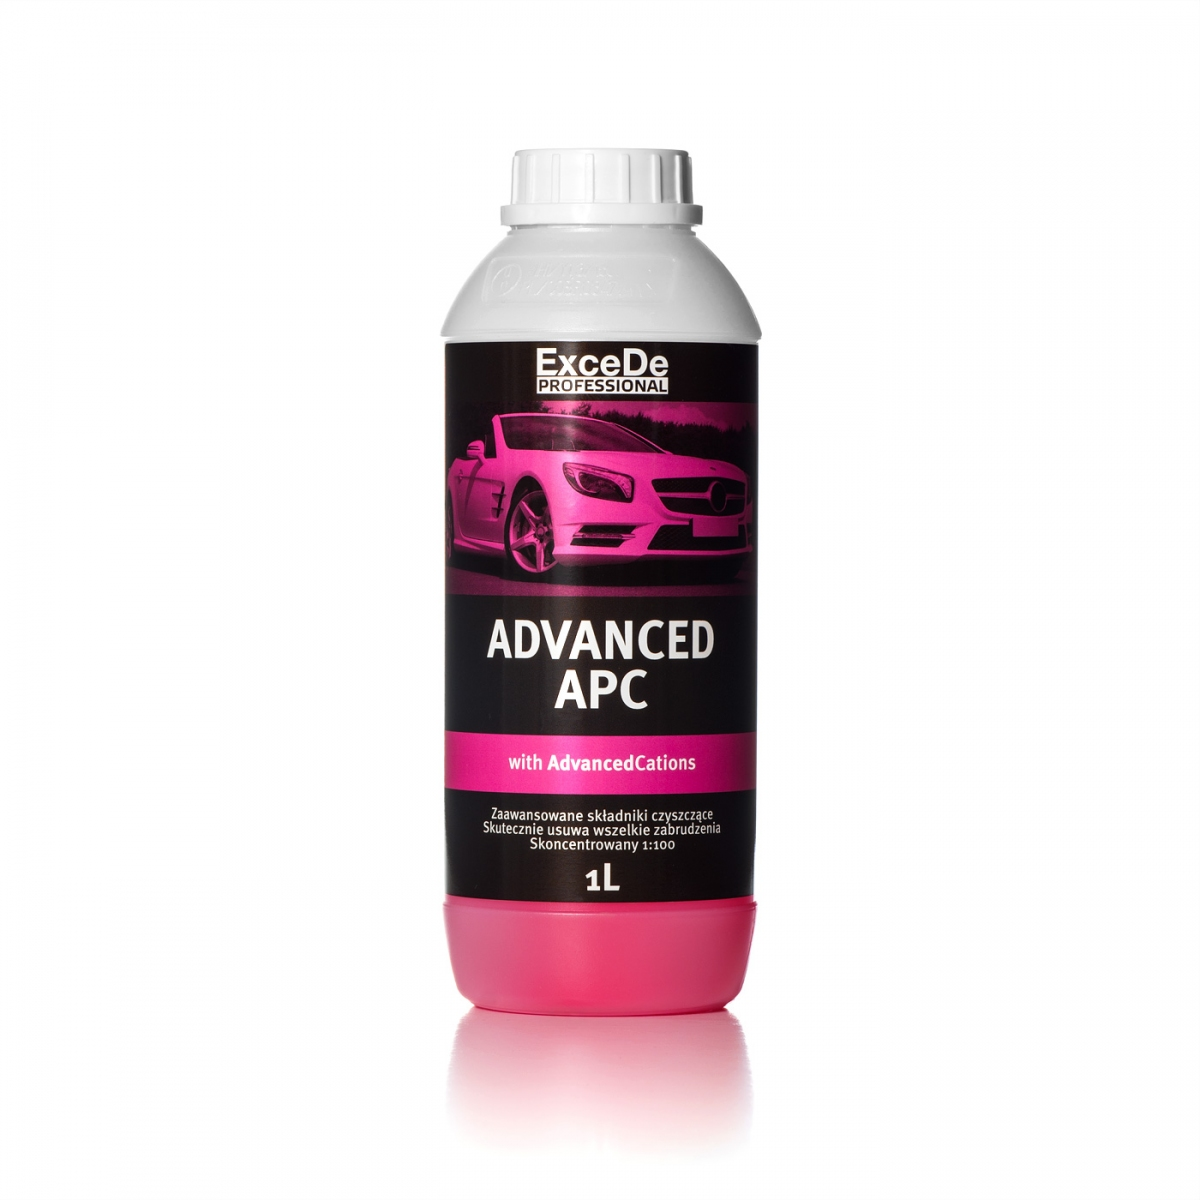 Excede Advanced APC 1L